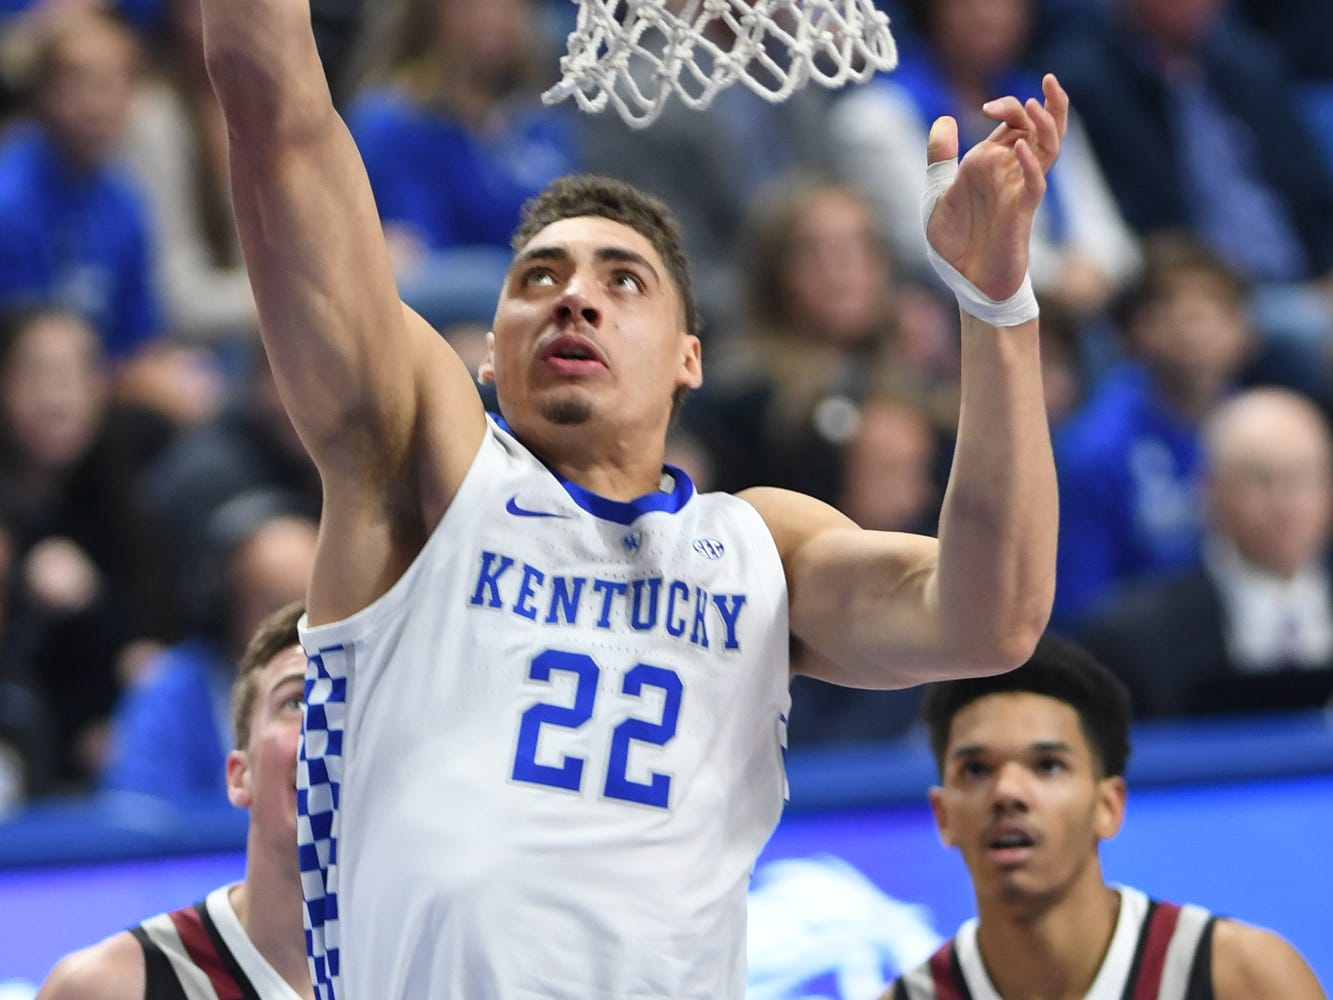 Reid Travis lays the ball up during the University of Kentucky  basketball game against Indiana University of Pennsylvania at Rupp Arena on Friday, Nov. 2, 2018.